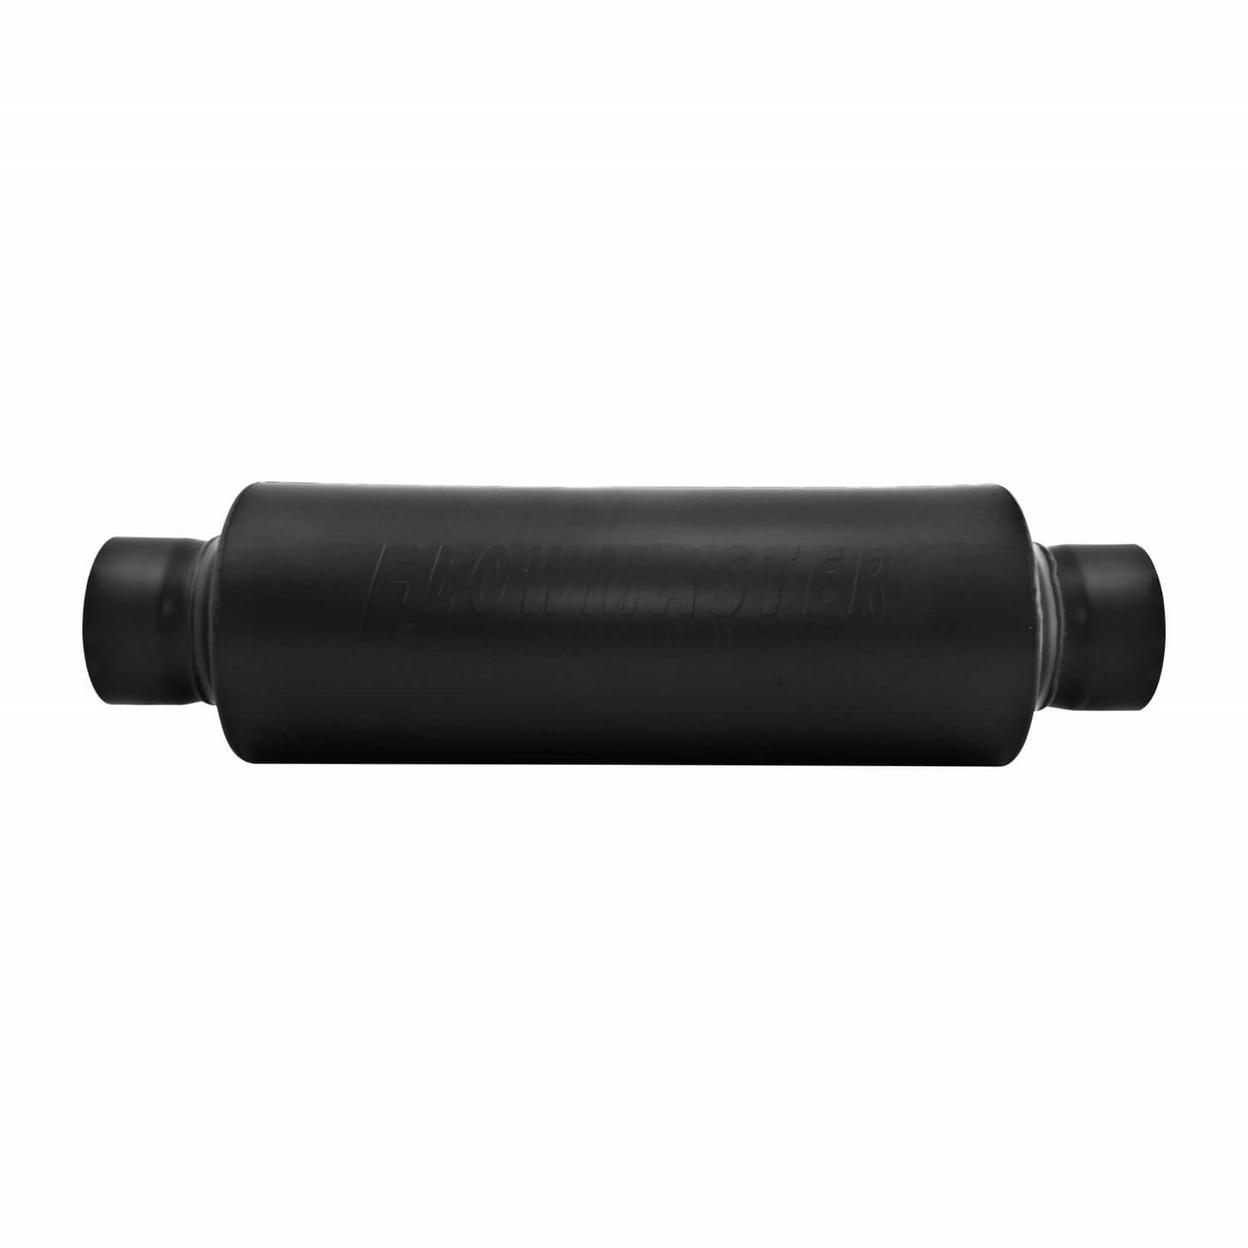 Pro Series Muffler - 4.00 Center In / 4.00 Center Out - Moderate Sound